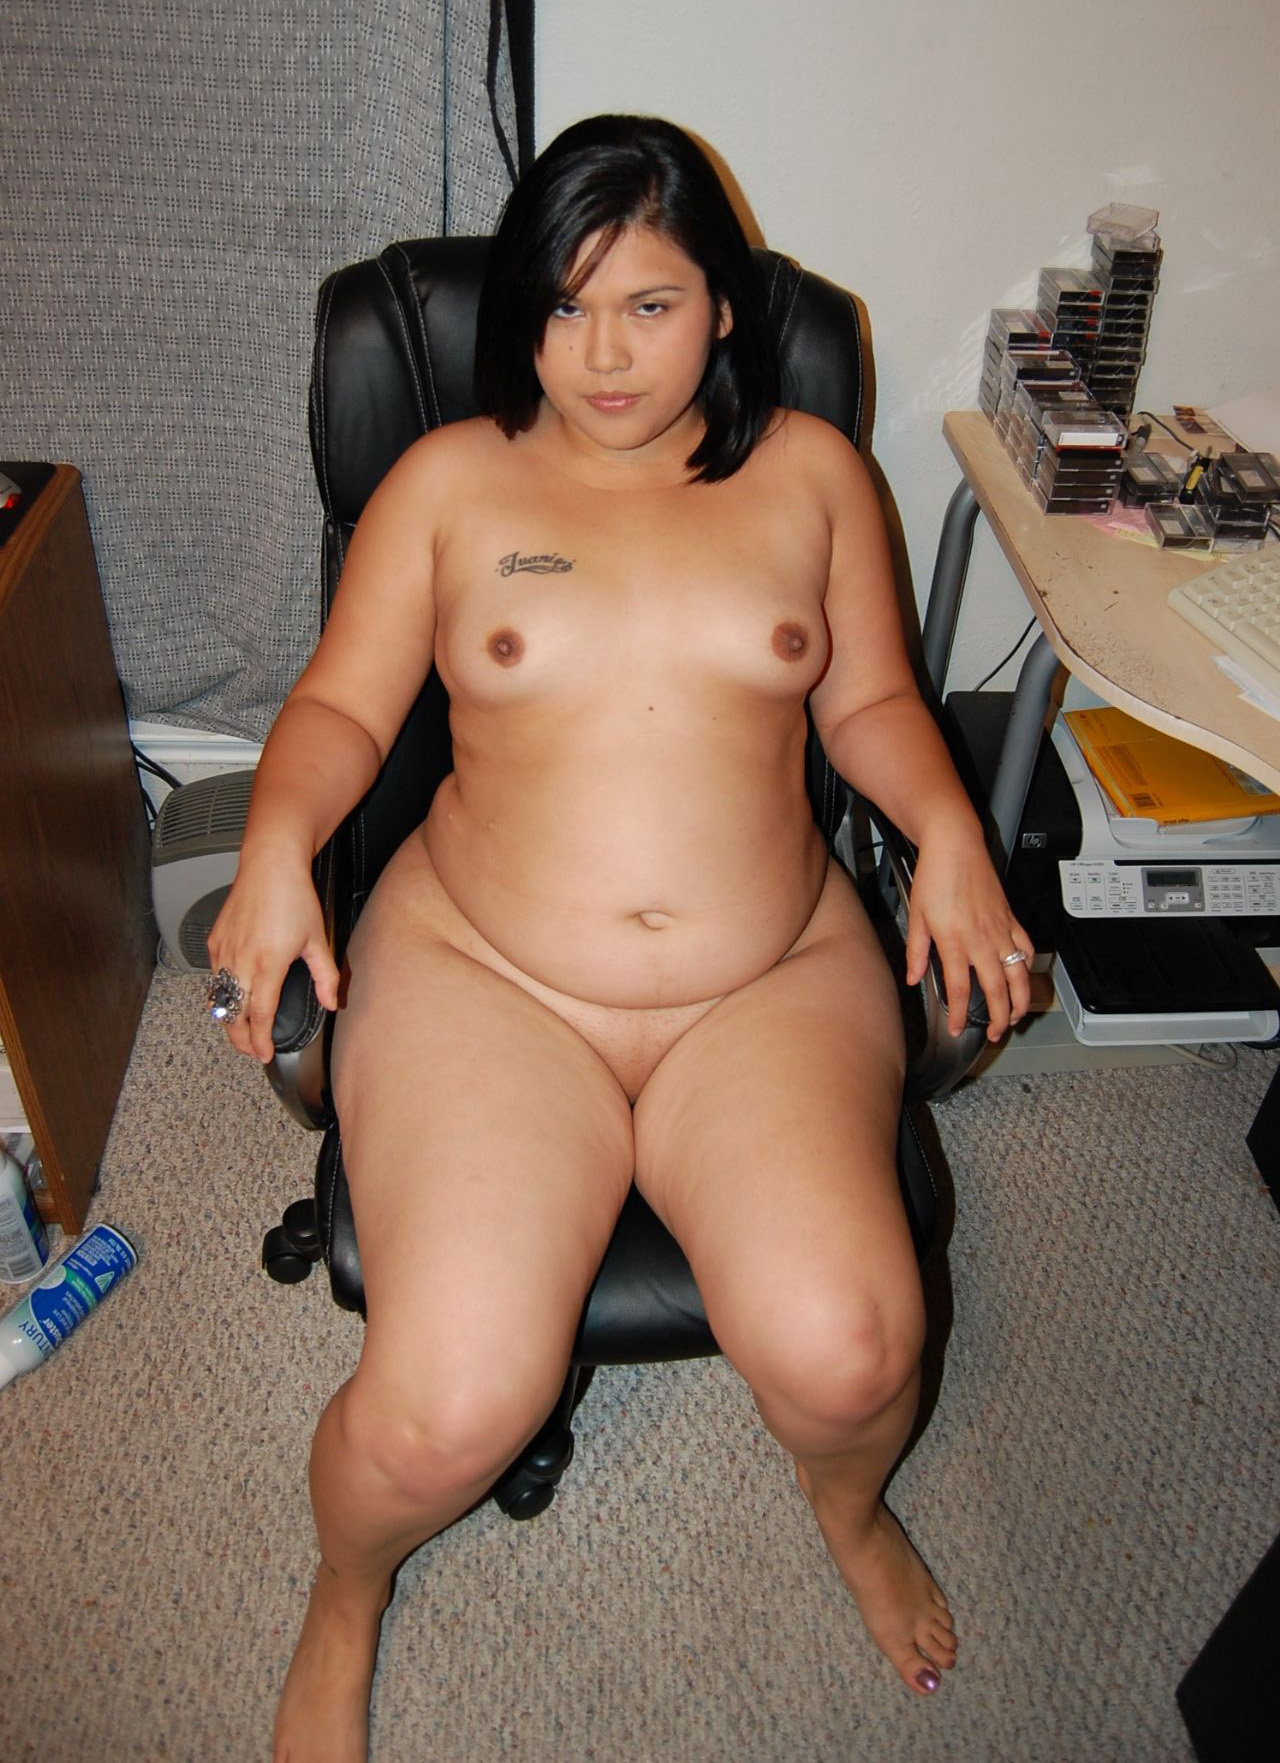 Single Latina mom pictures love getting love-bites over